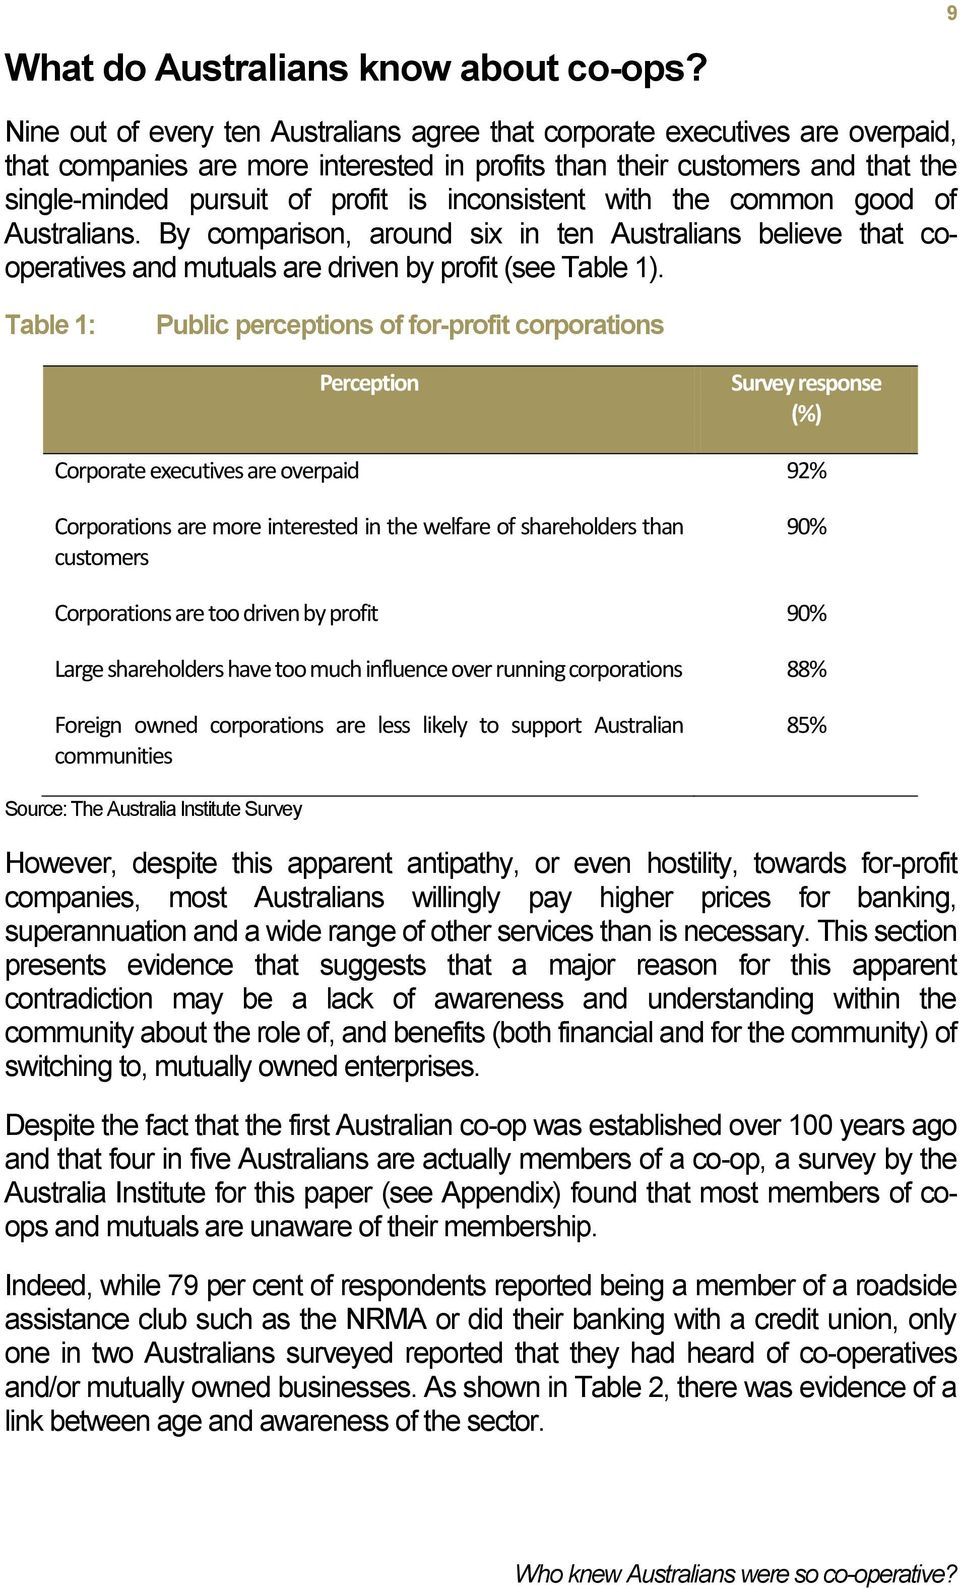 inconsistent with the common good of Australians. By comparison, around six in ten Australians believe that cooperatives and mutuals are driven by profit (see Table 1).